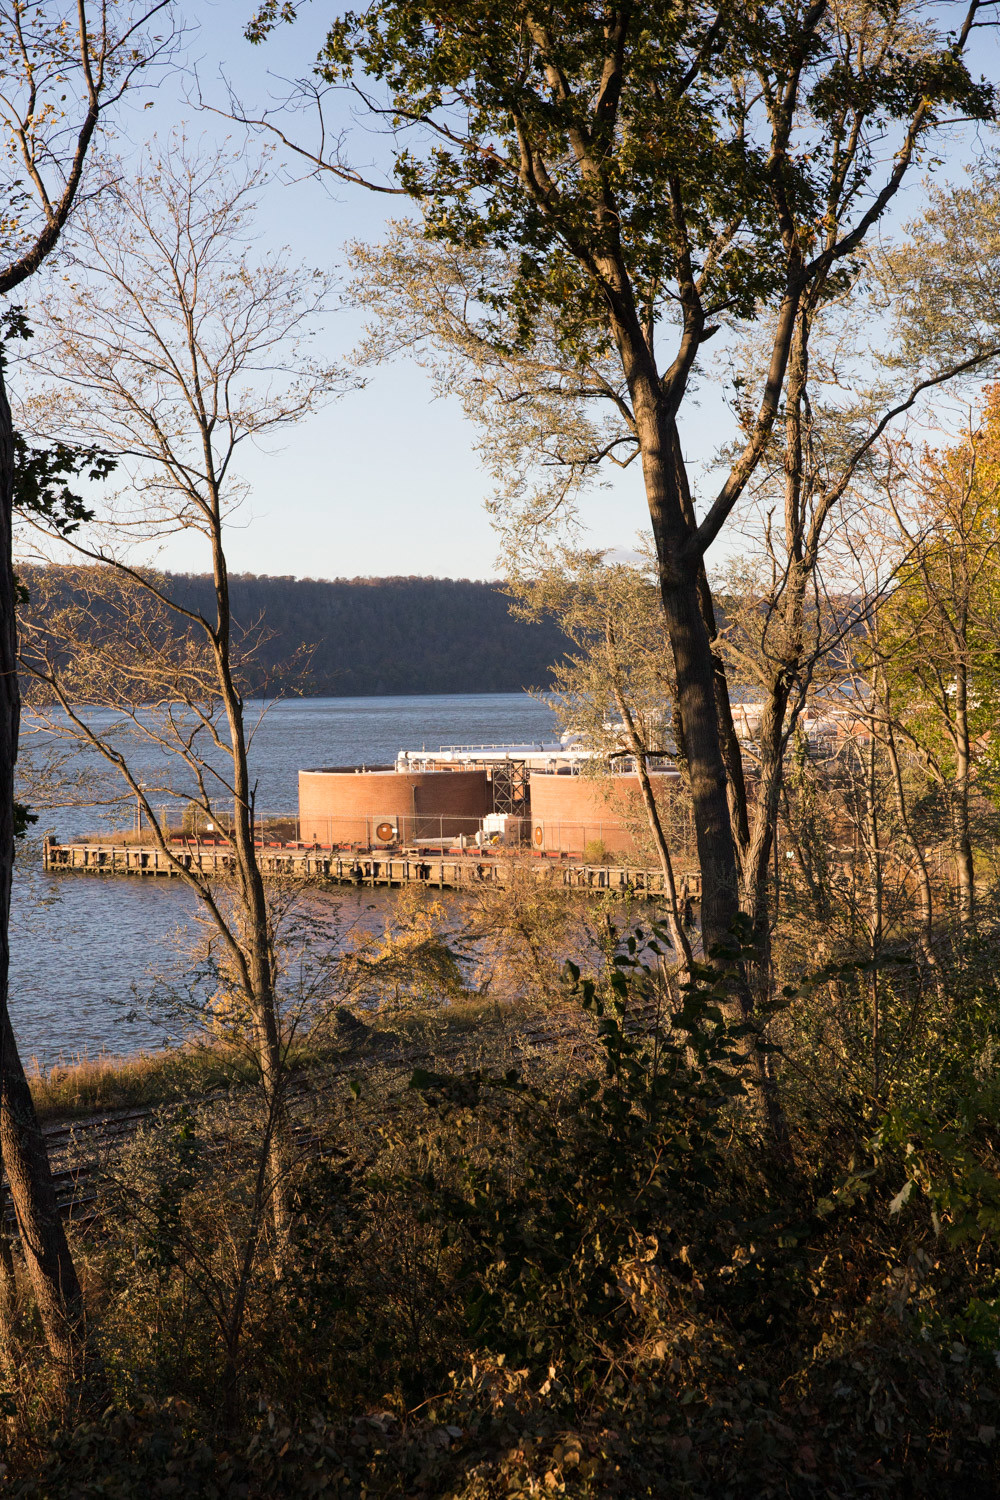 The Westchester County wastewater treatment plant that borders Riverdale and train tracks are seen along the riverfront in an area blocked off from public access.